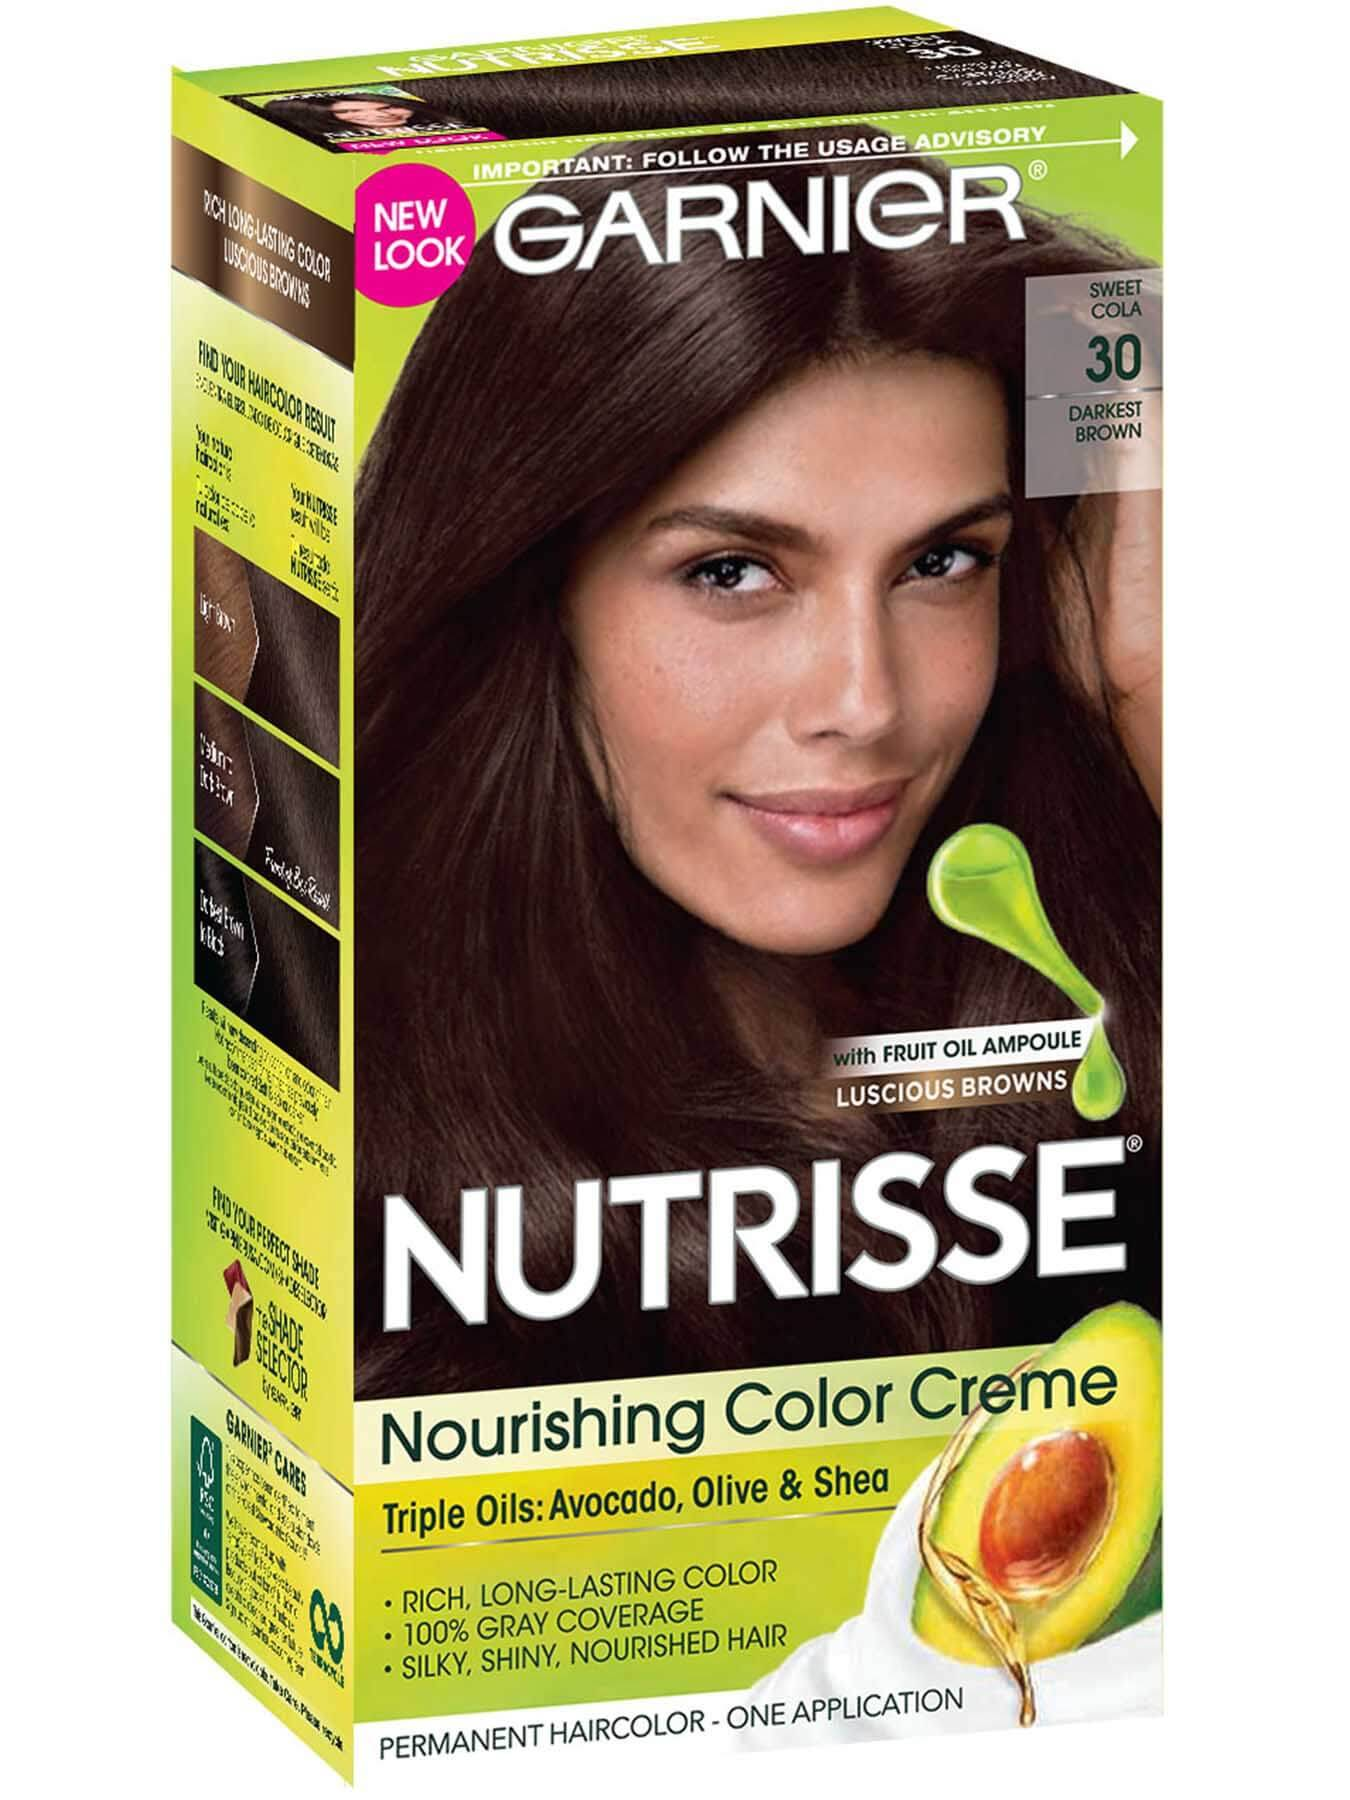 Nutrisse Nourishing Color Creme - Darkest Brown 30 - Garnier